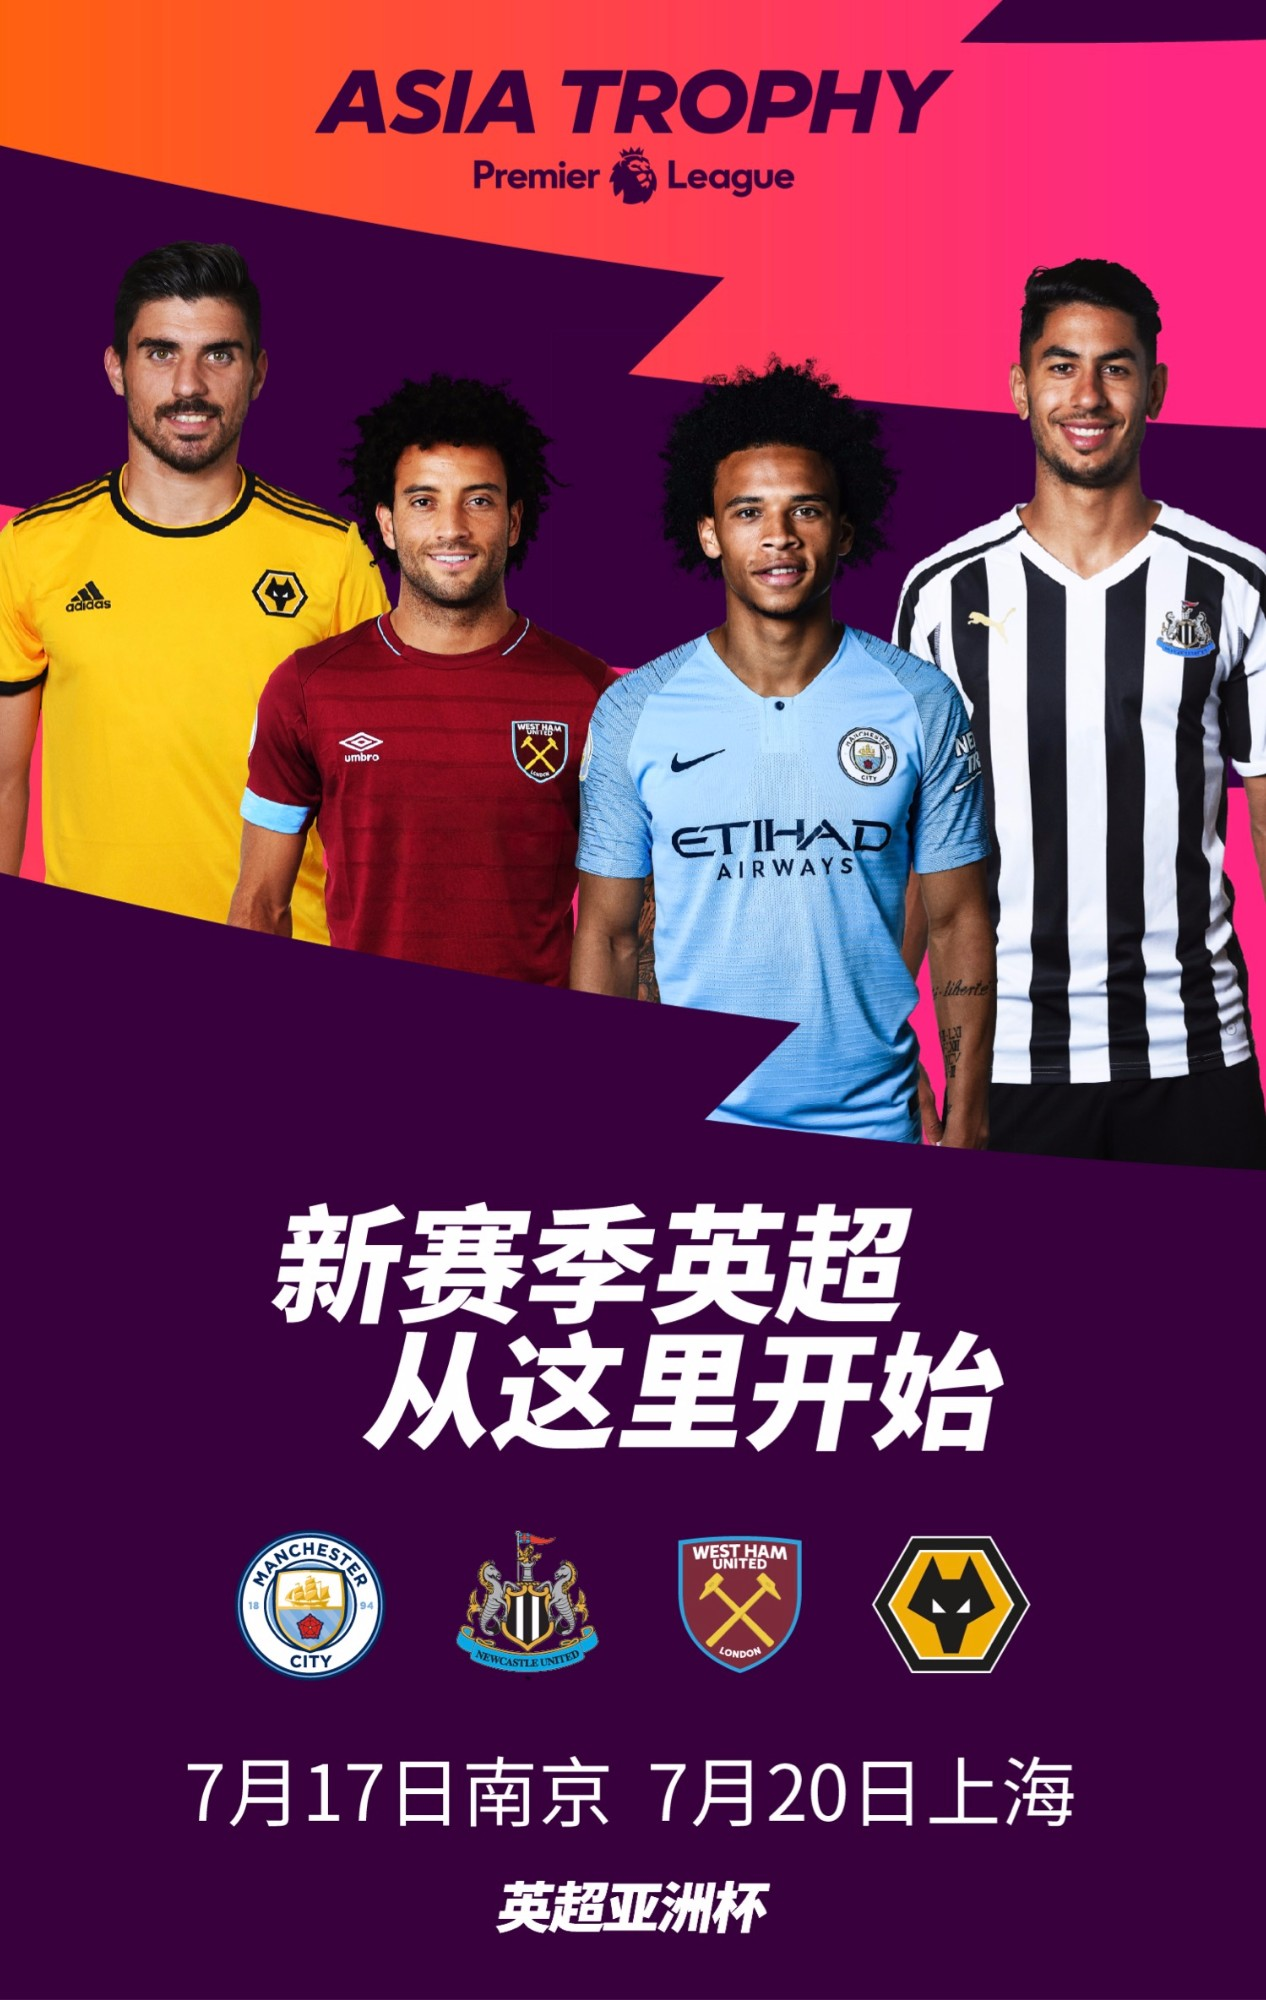 2019-Premier-League-Asia-Trophy-Flyer.jpg